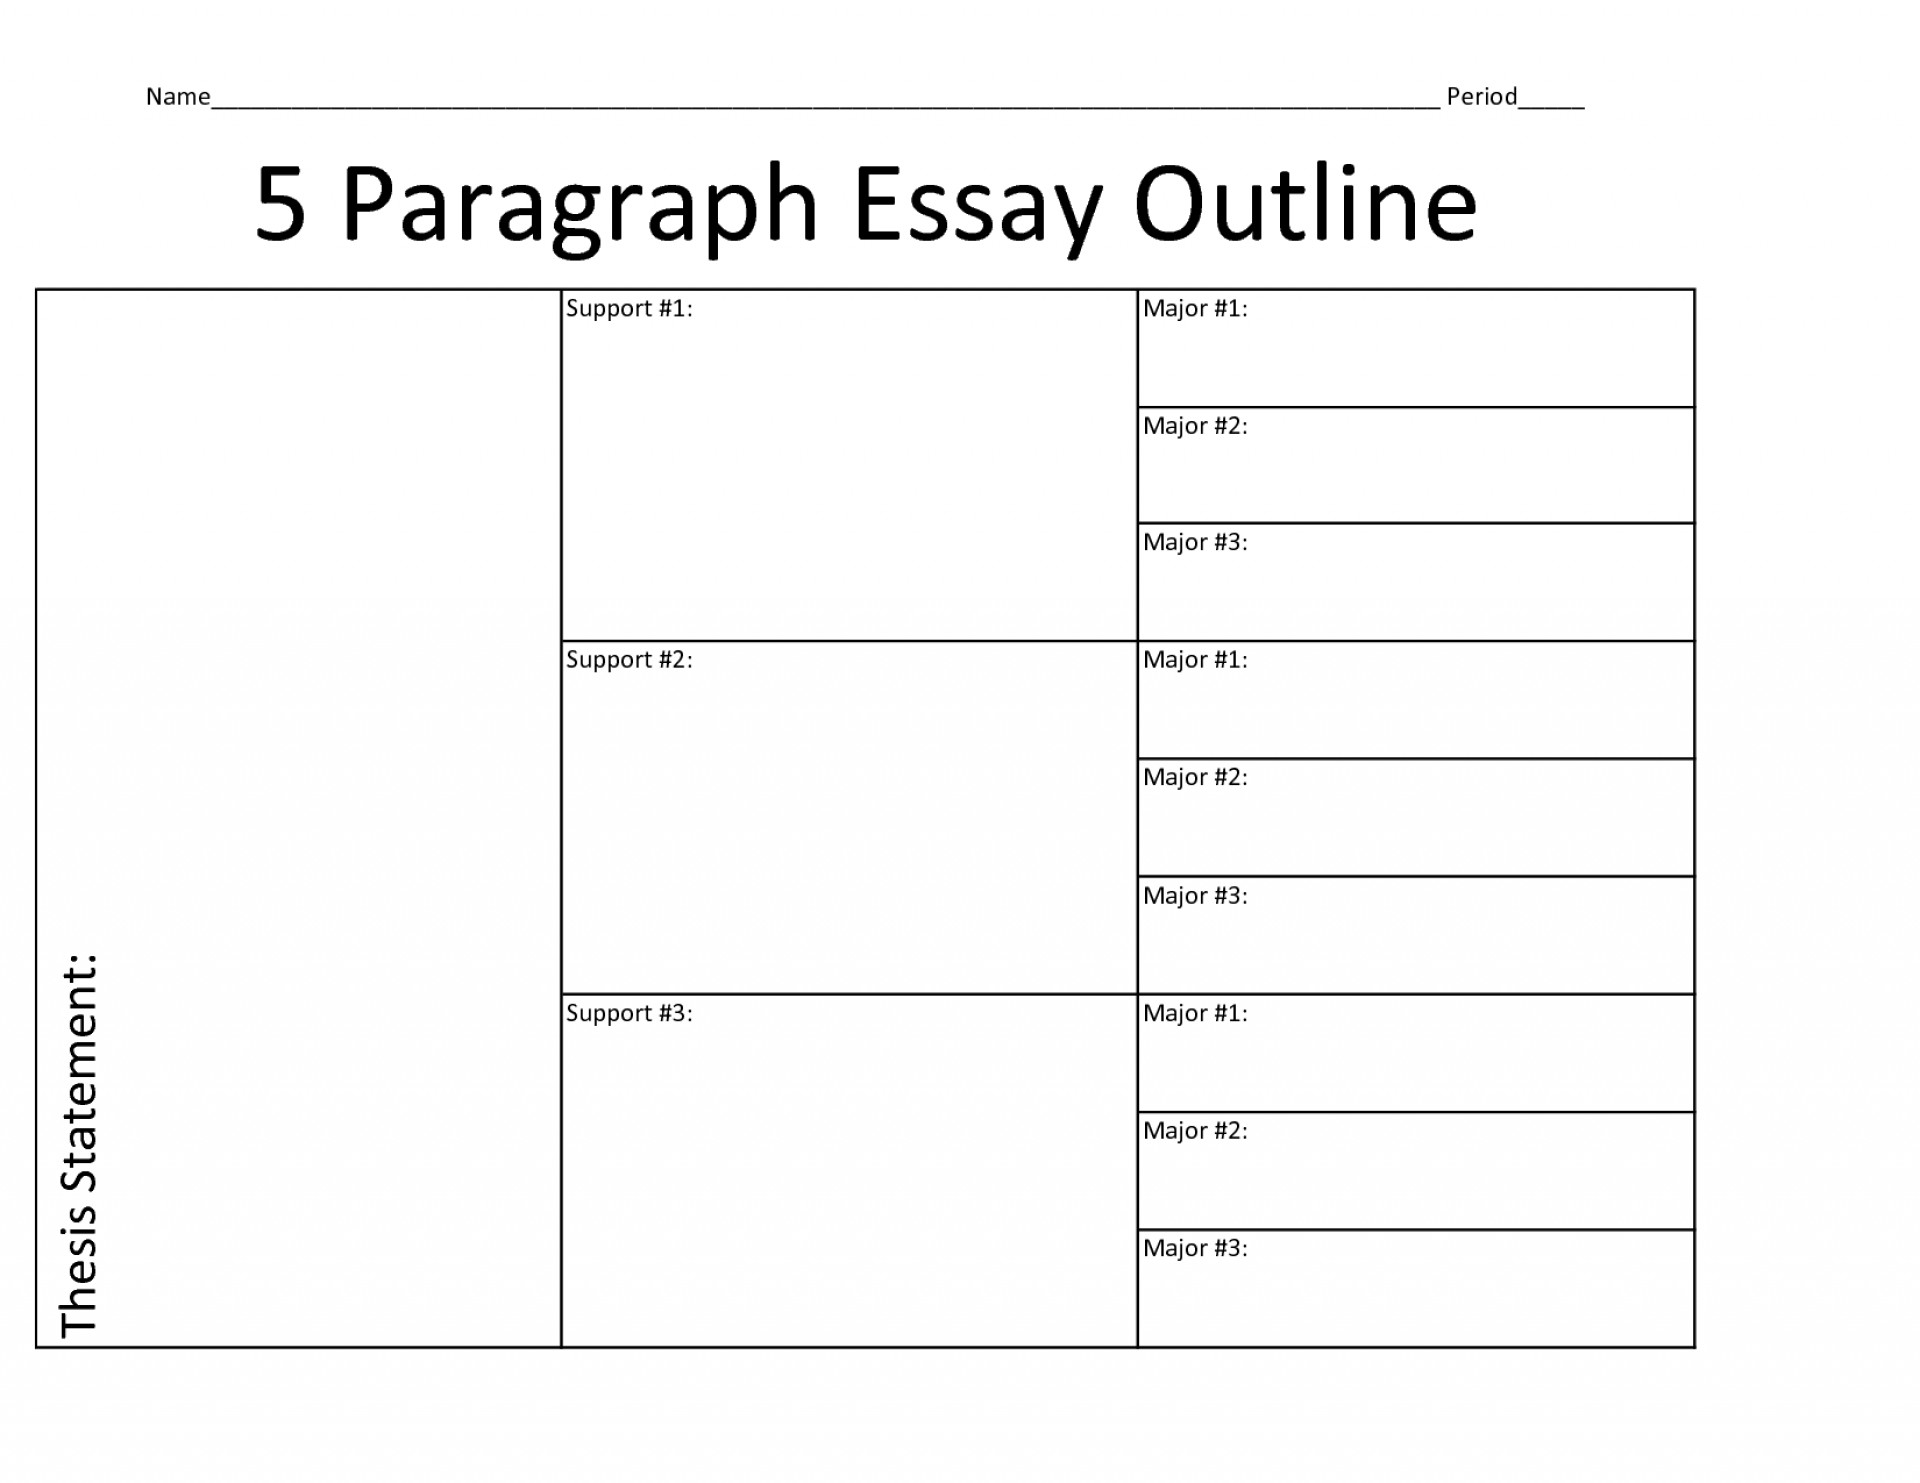 015 Five Paragraph Essay Graphic Organizer Organizers Executive Functioning Mr Brown039s Outline L Wonderful High School 5 Middle Pdf Organizer-hamburger 1920